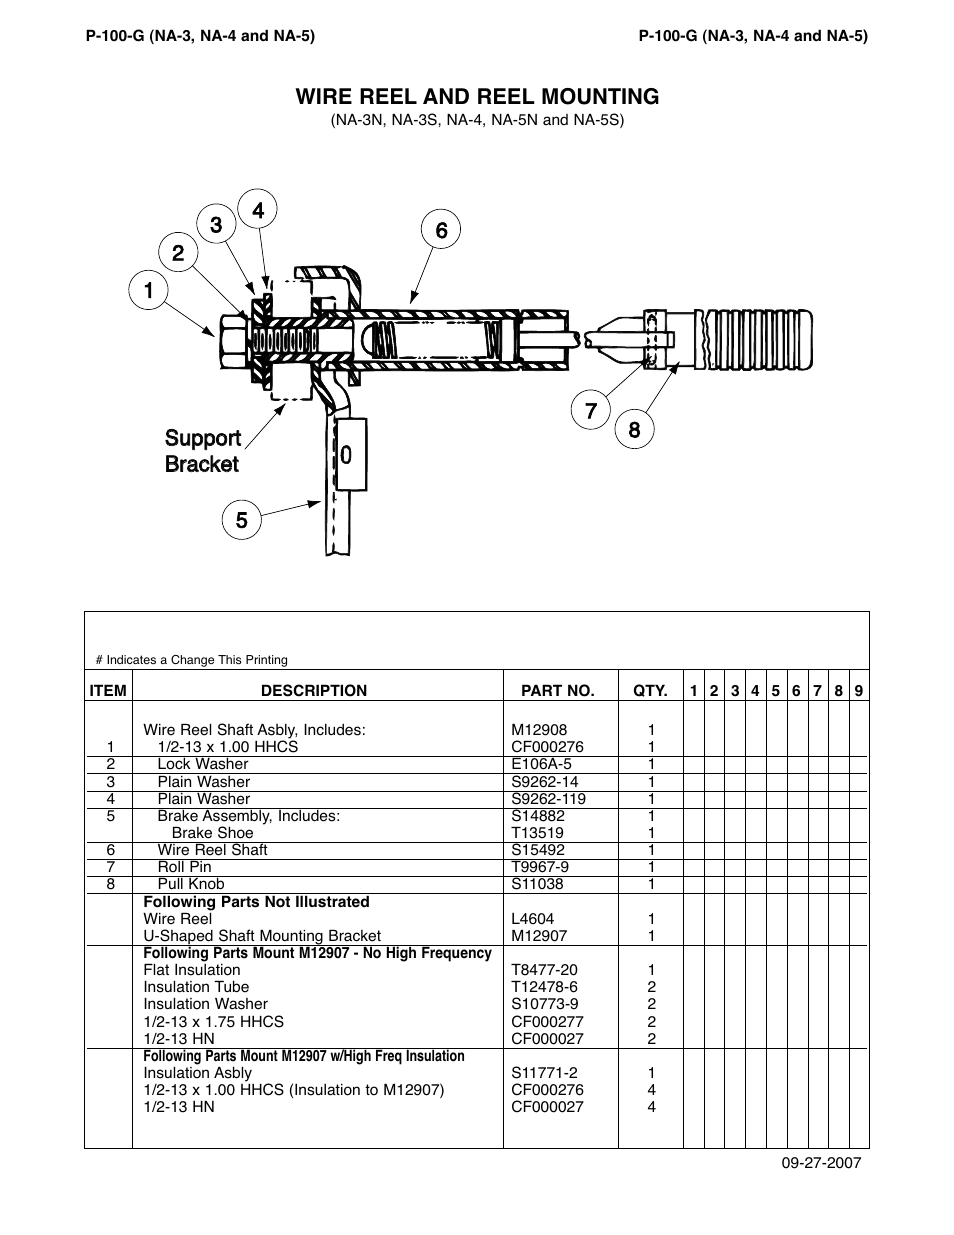 medium resolution of wire reel and reel mounting lincoln electric na 5 im305 c user manual